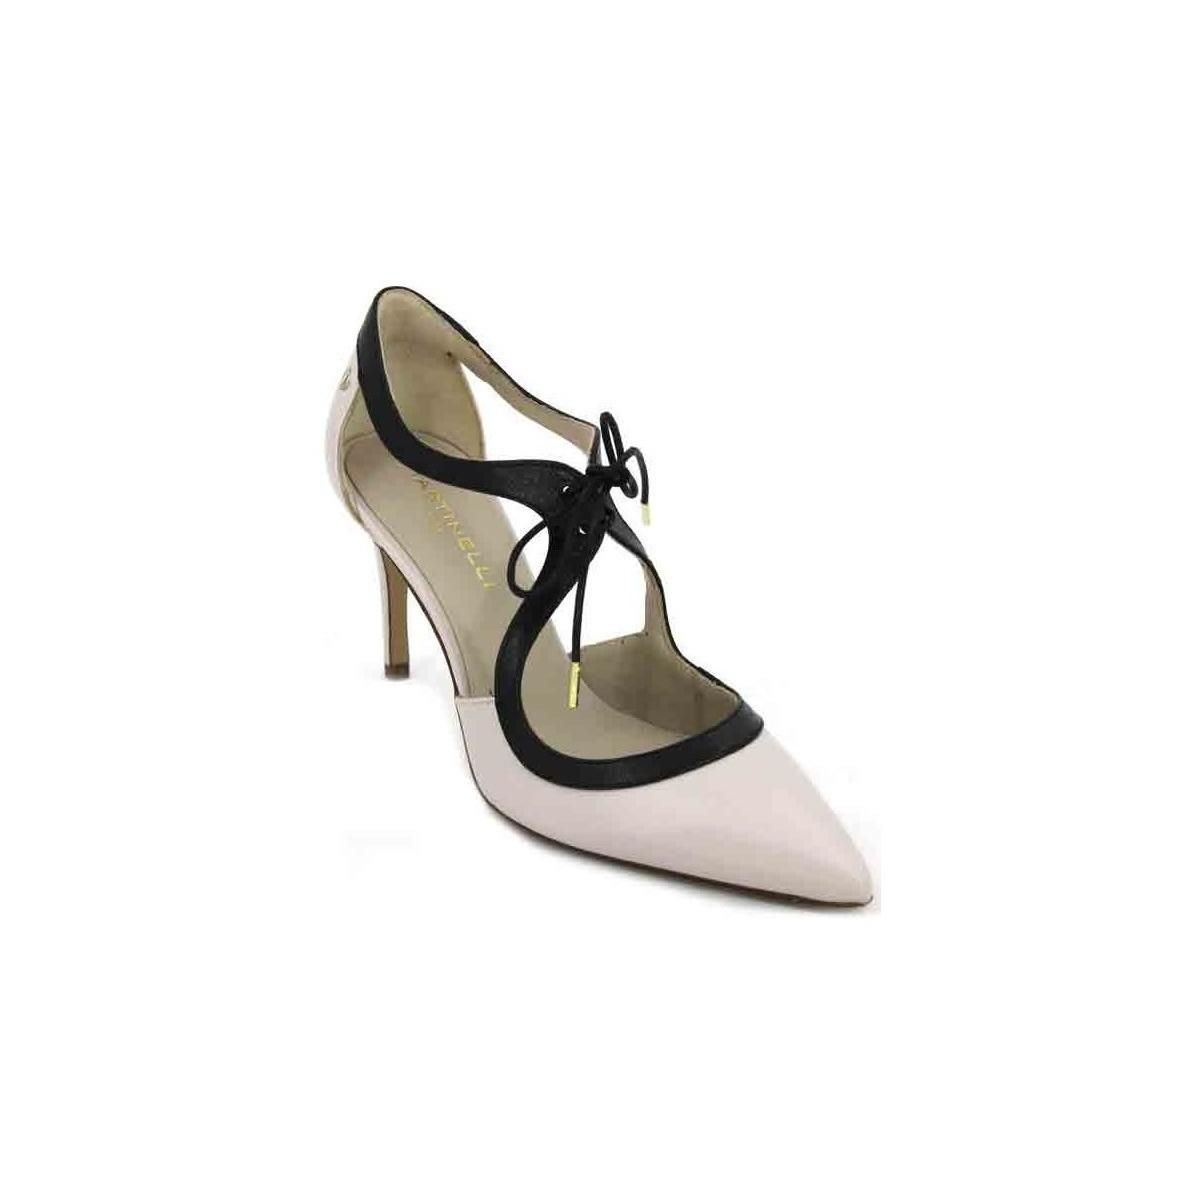 Very Cheap Martinelli Navia 1271-A835S Women's Shoes women's Court Shoes in Cheap Sale Great Deals Clearance Sale 9Fv3Li